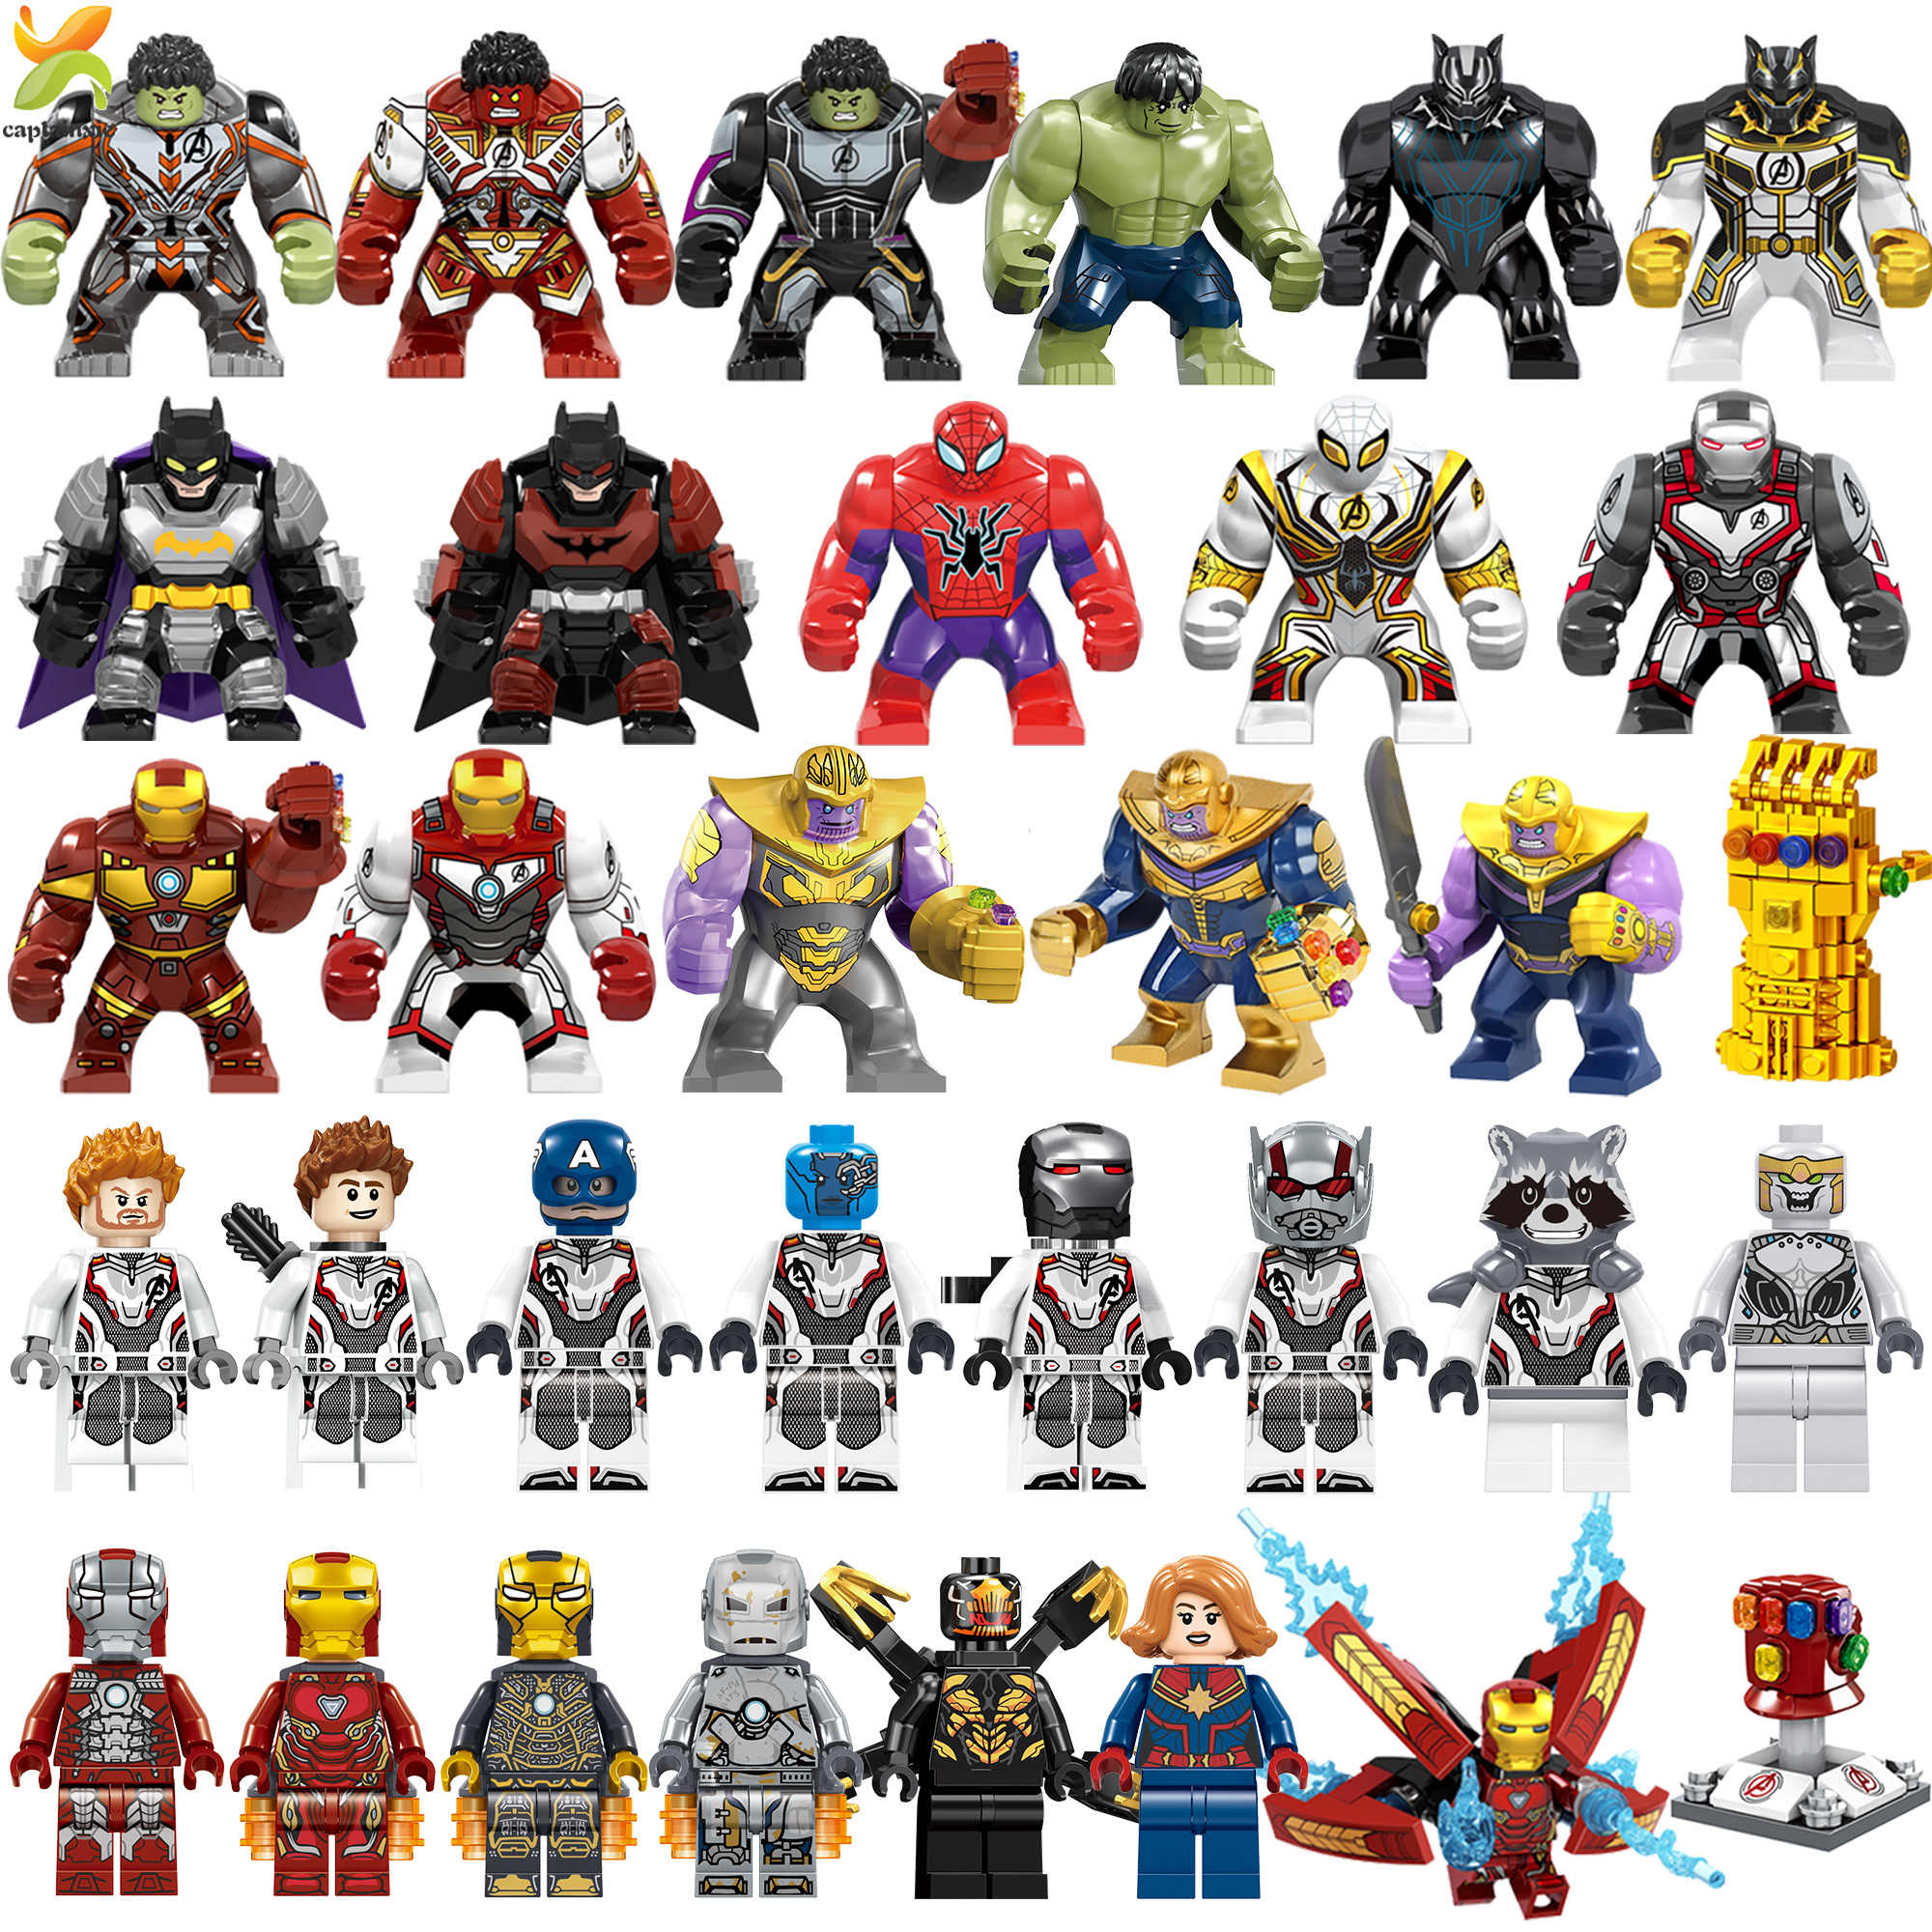 Avengers Endgame Marvel Super Hero Captain War Machine Compatible Legoed Hulk Thanos Galaxy iron man Figures Building Blocks Toy